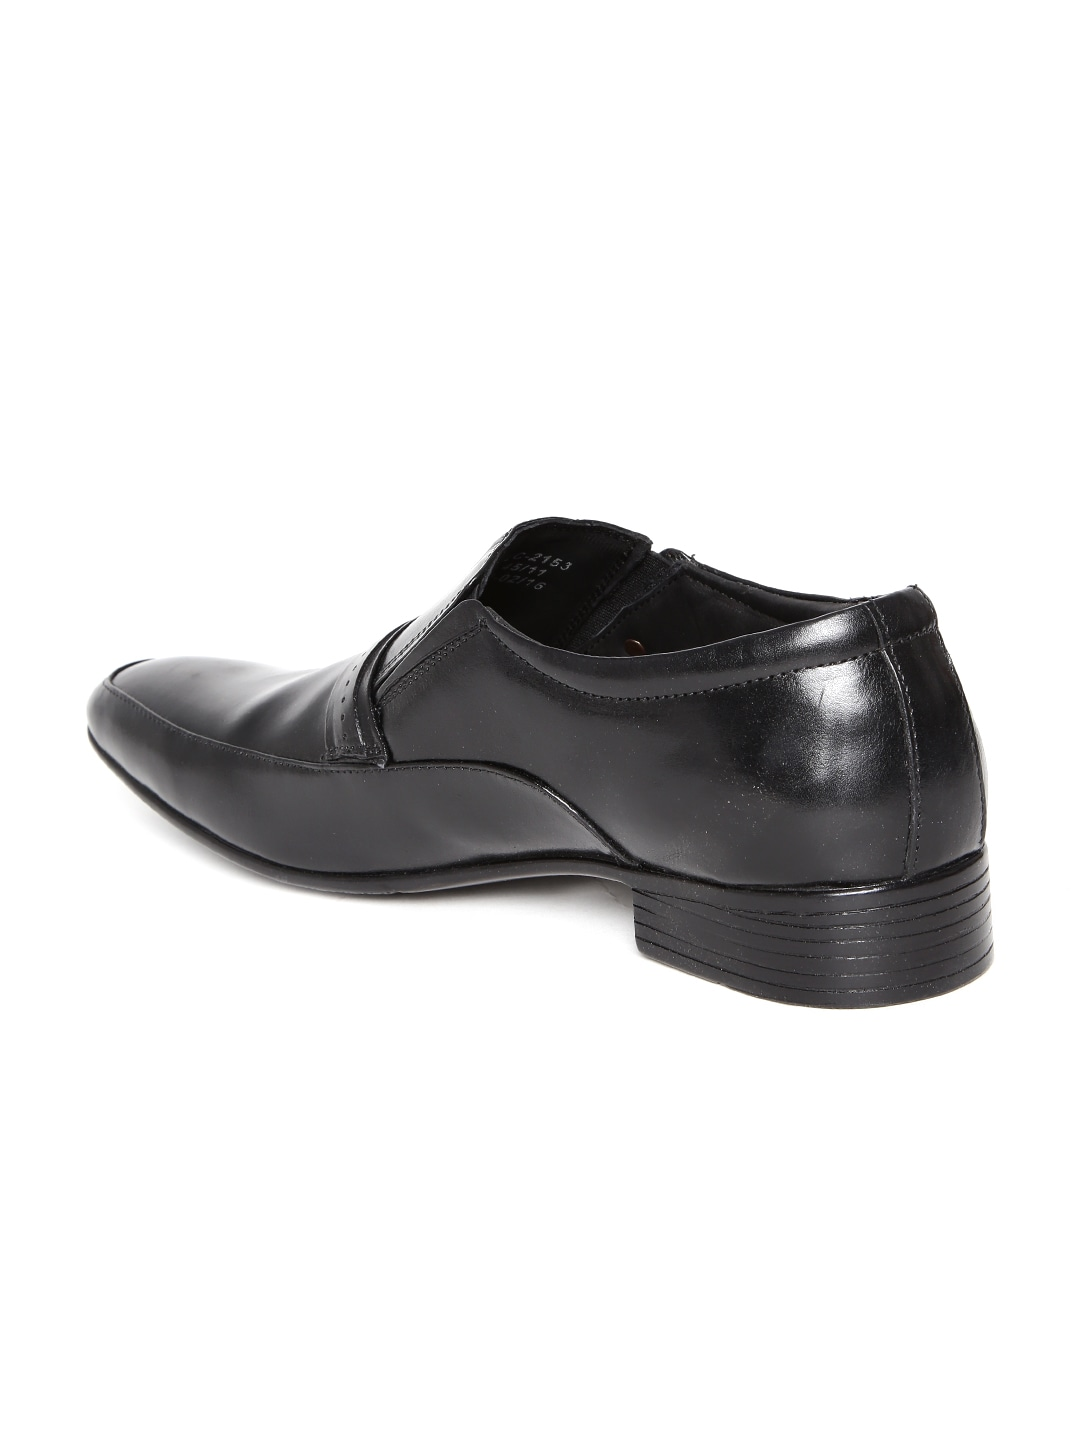 Mens Bedroom Slippers Leather Lee Cooper Exclusive Lee Cooper Online Store In India At Myntra